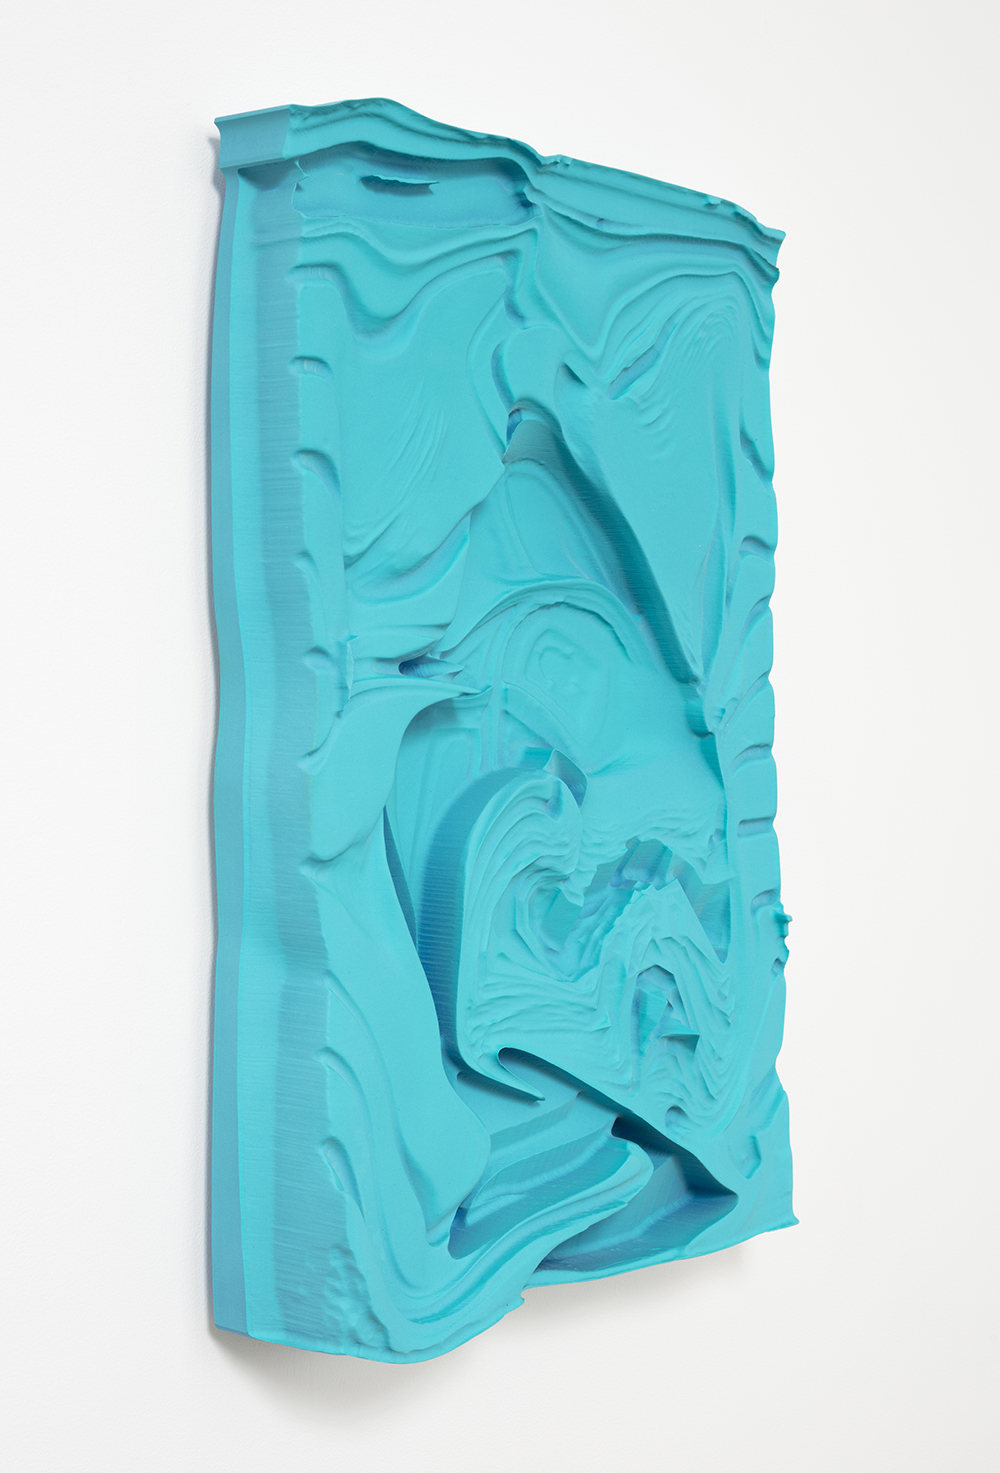 Michael Staniak. <em>OBJ_392</em>, 2017. Polyurethane resin and acrylic, 27 1/2 x 20 x 4 inches